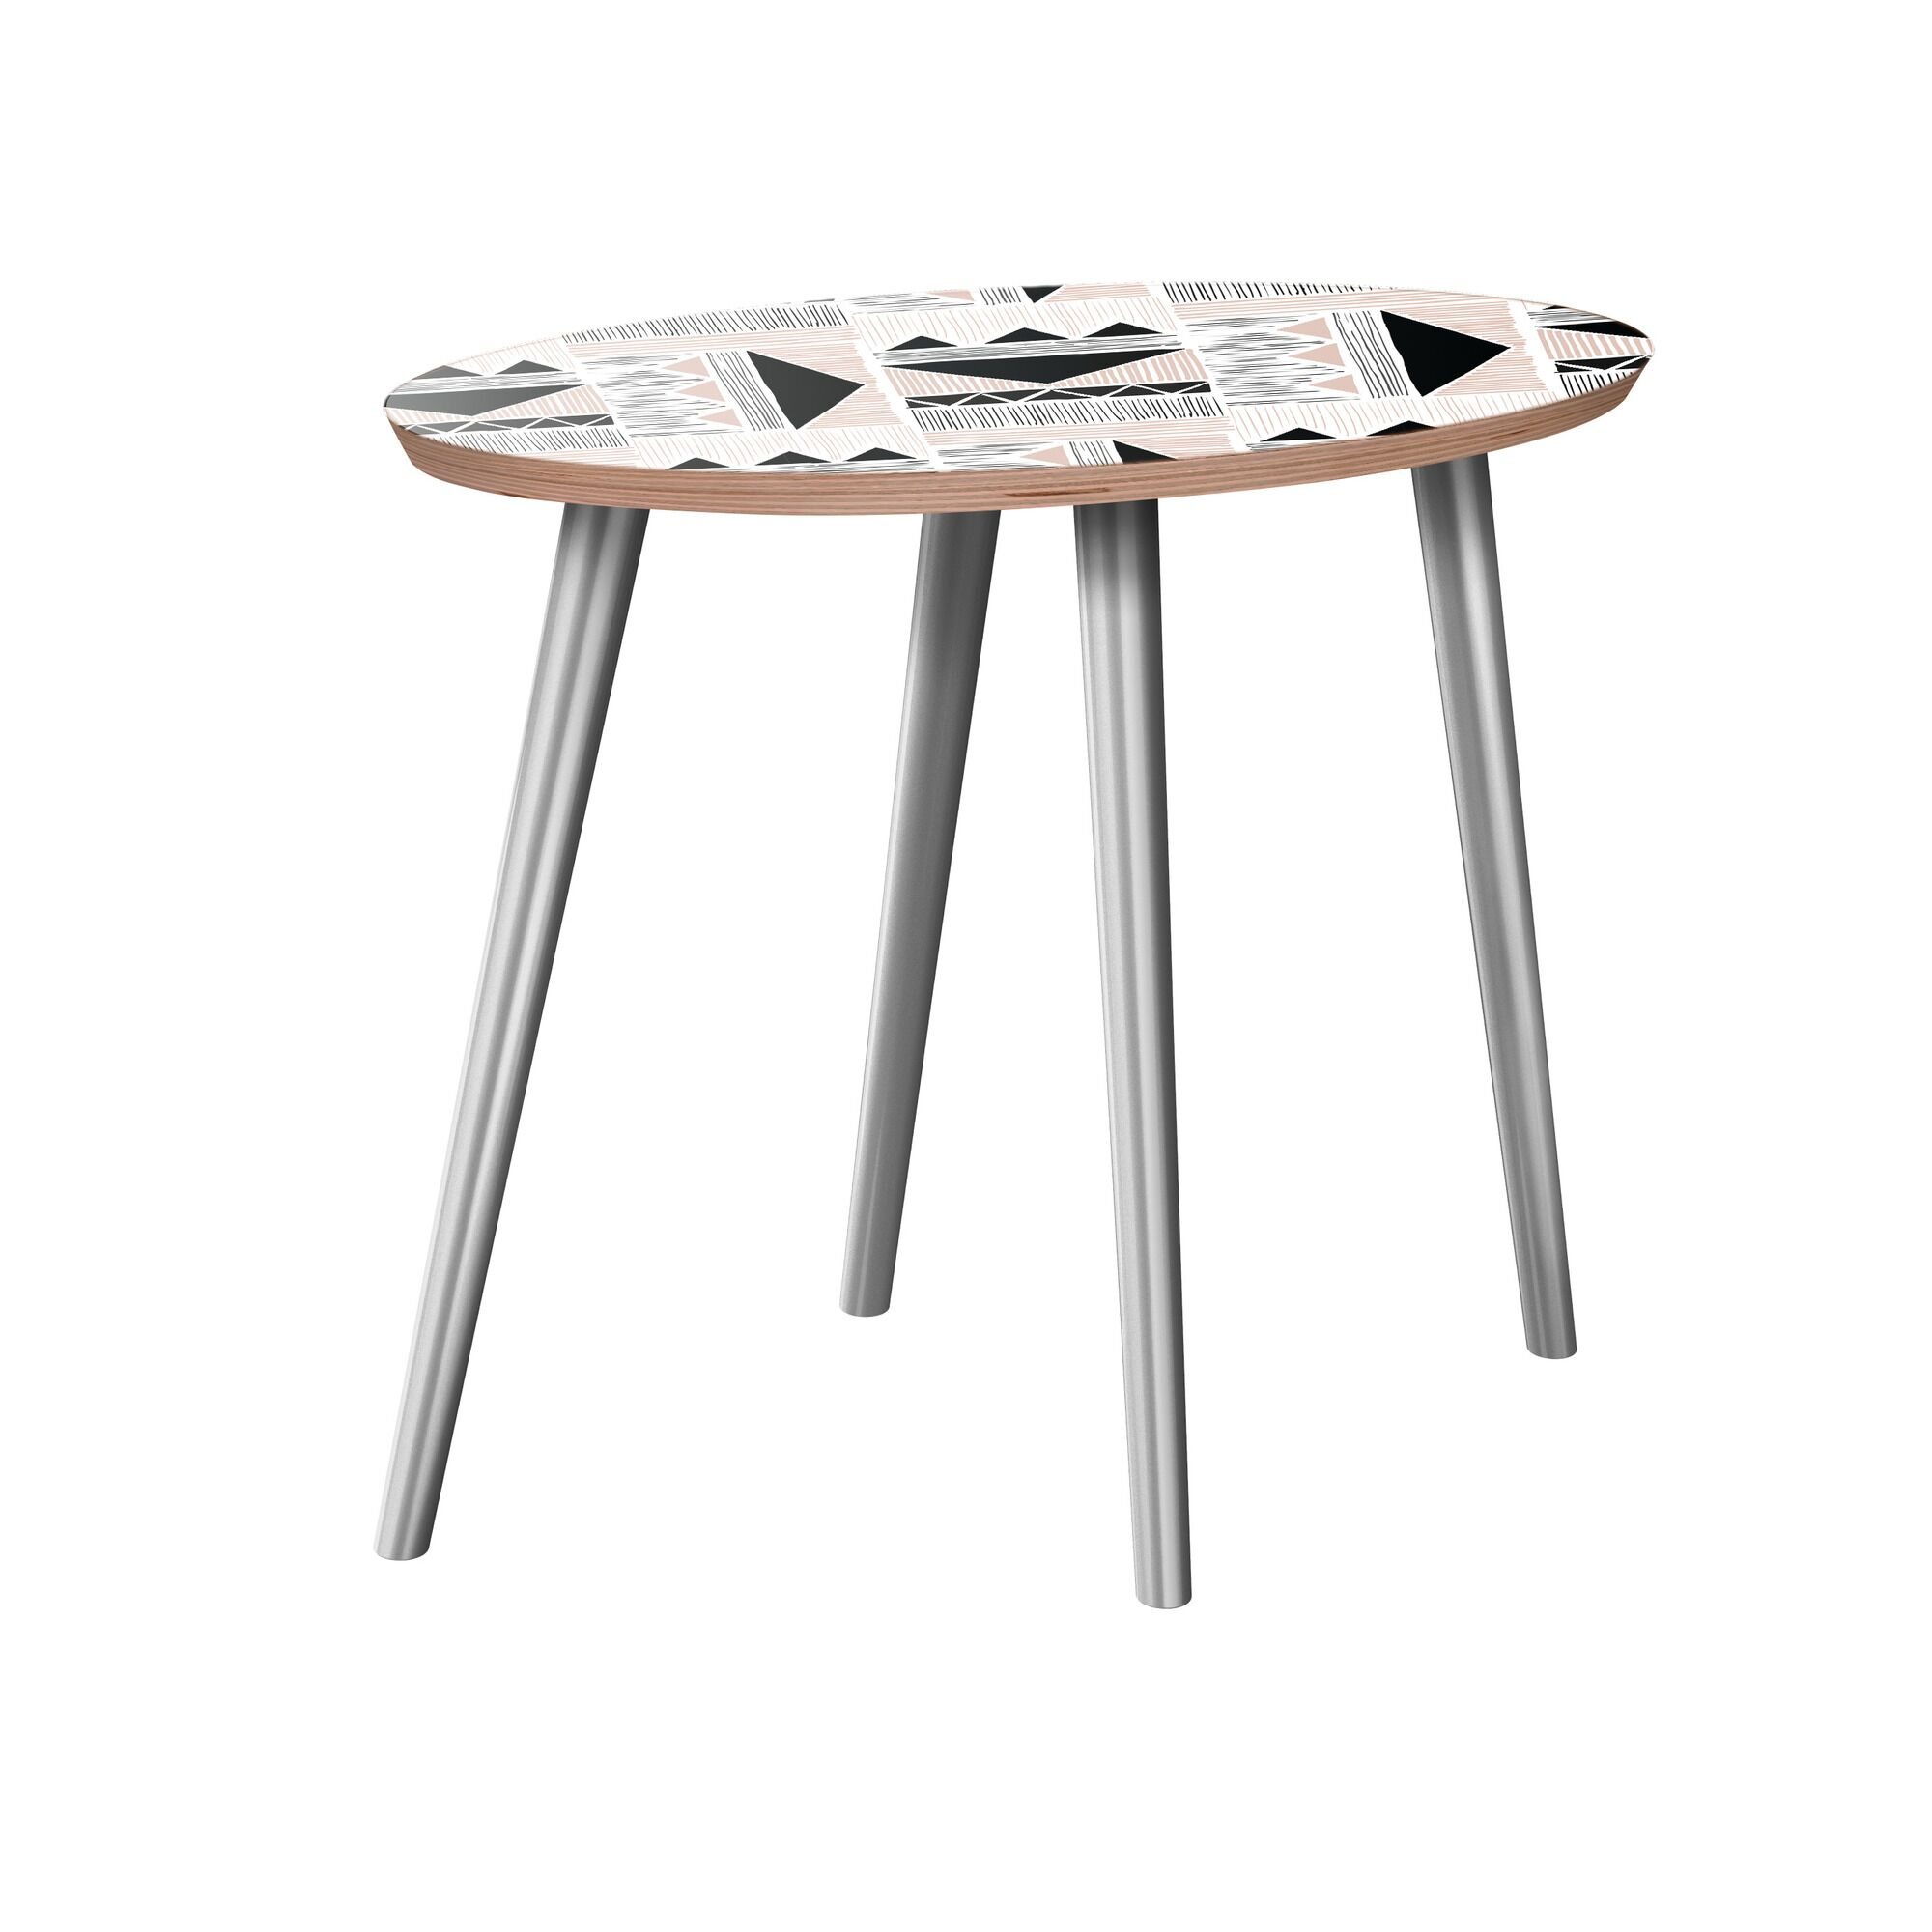 Howery End Table Table Base Color: Chrome, Table Top Color: Walnut